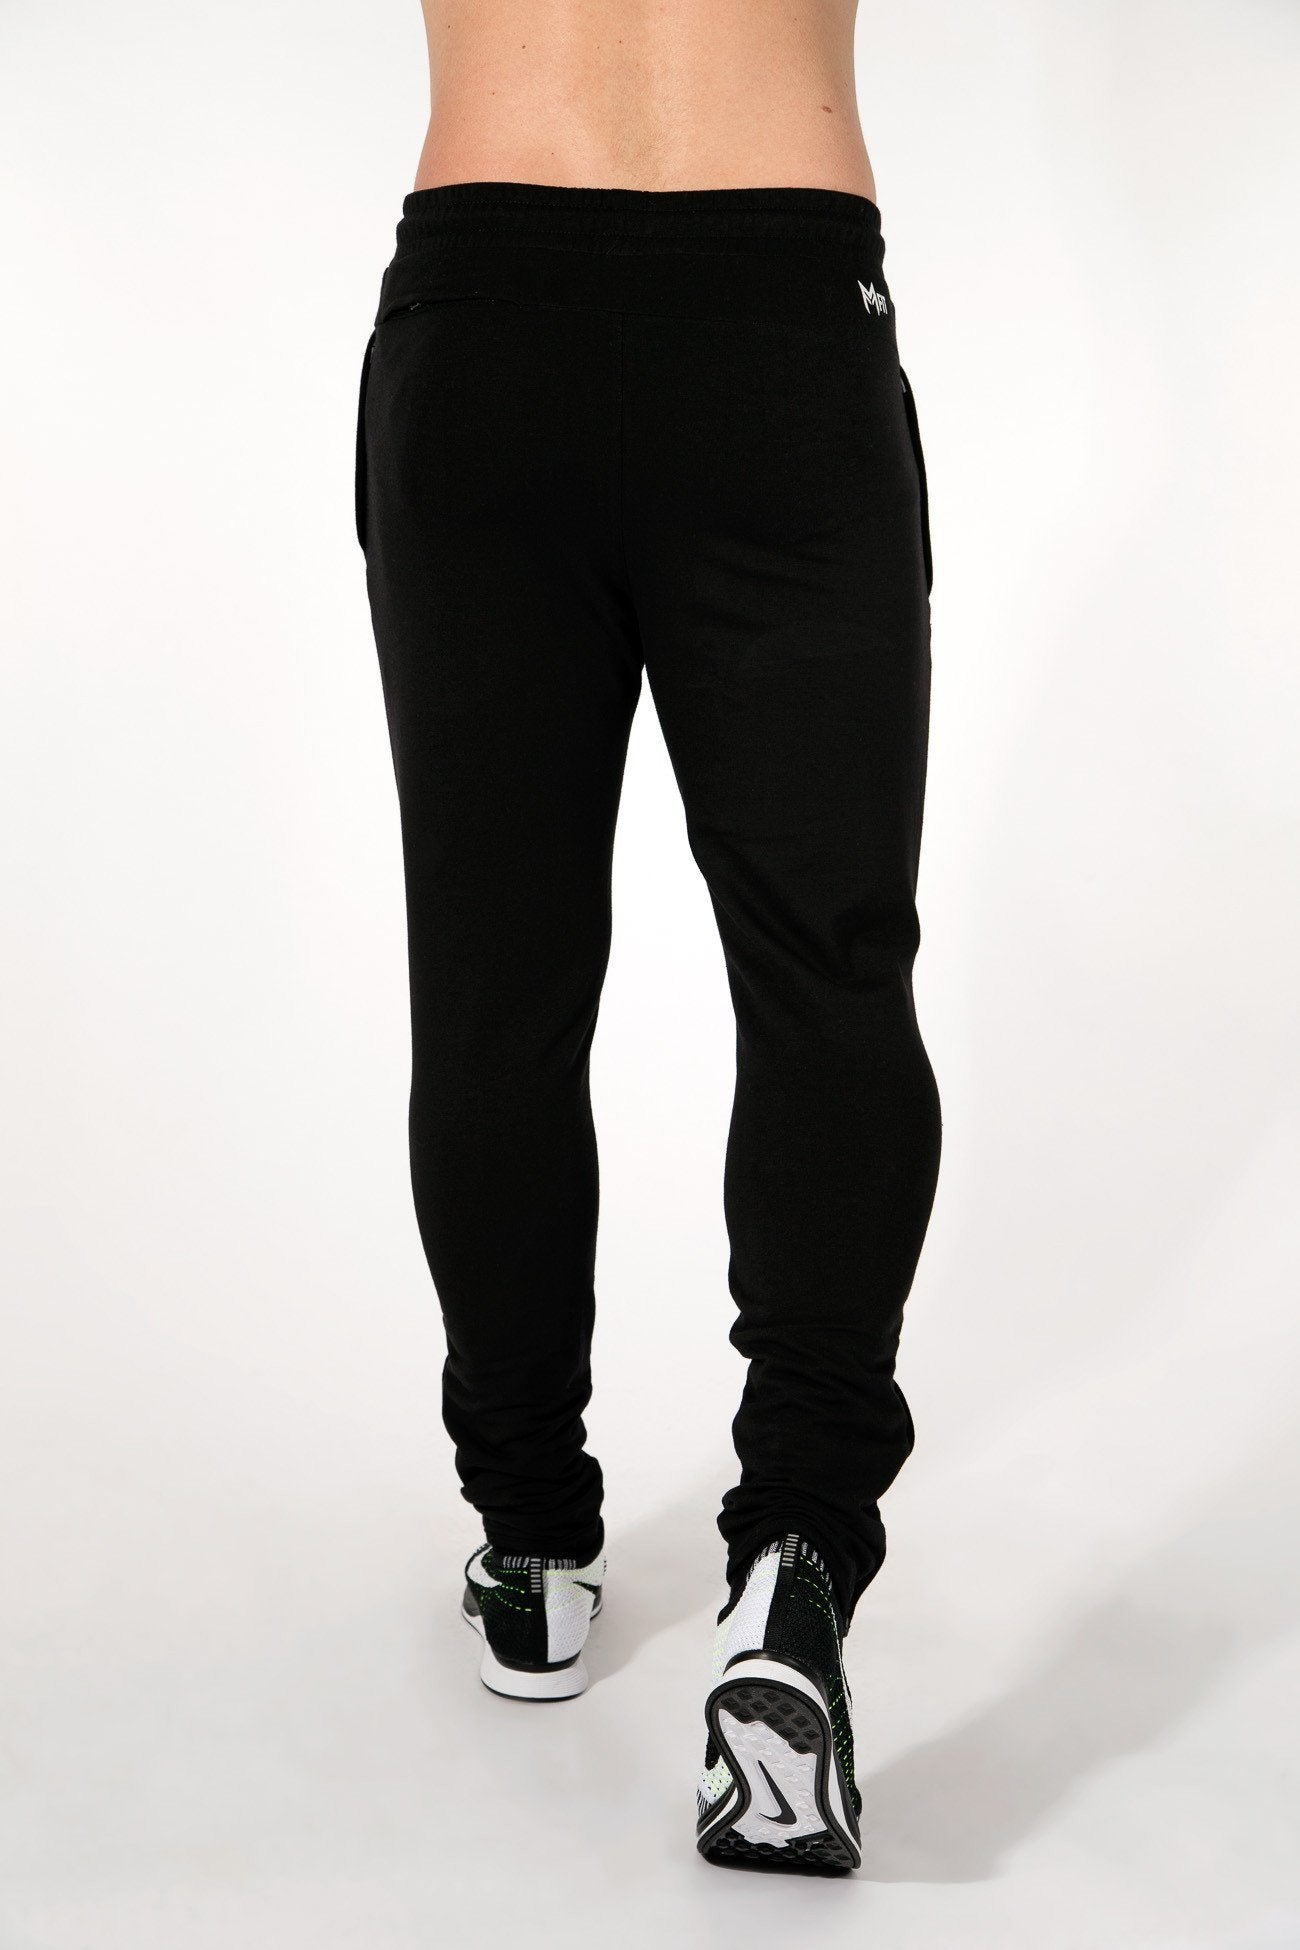 MFit Bottoms <br> Black/White - Muscle Fitness Factory